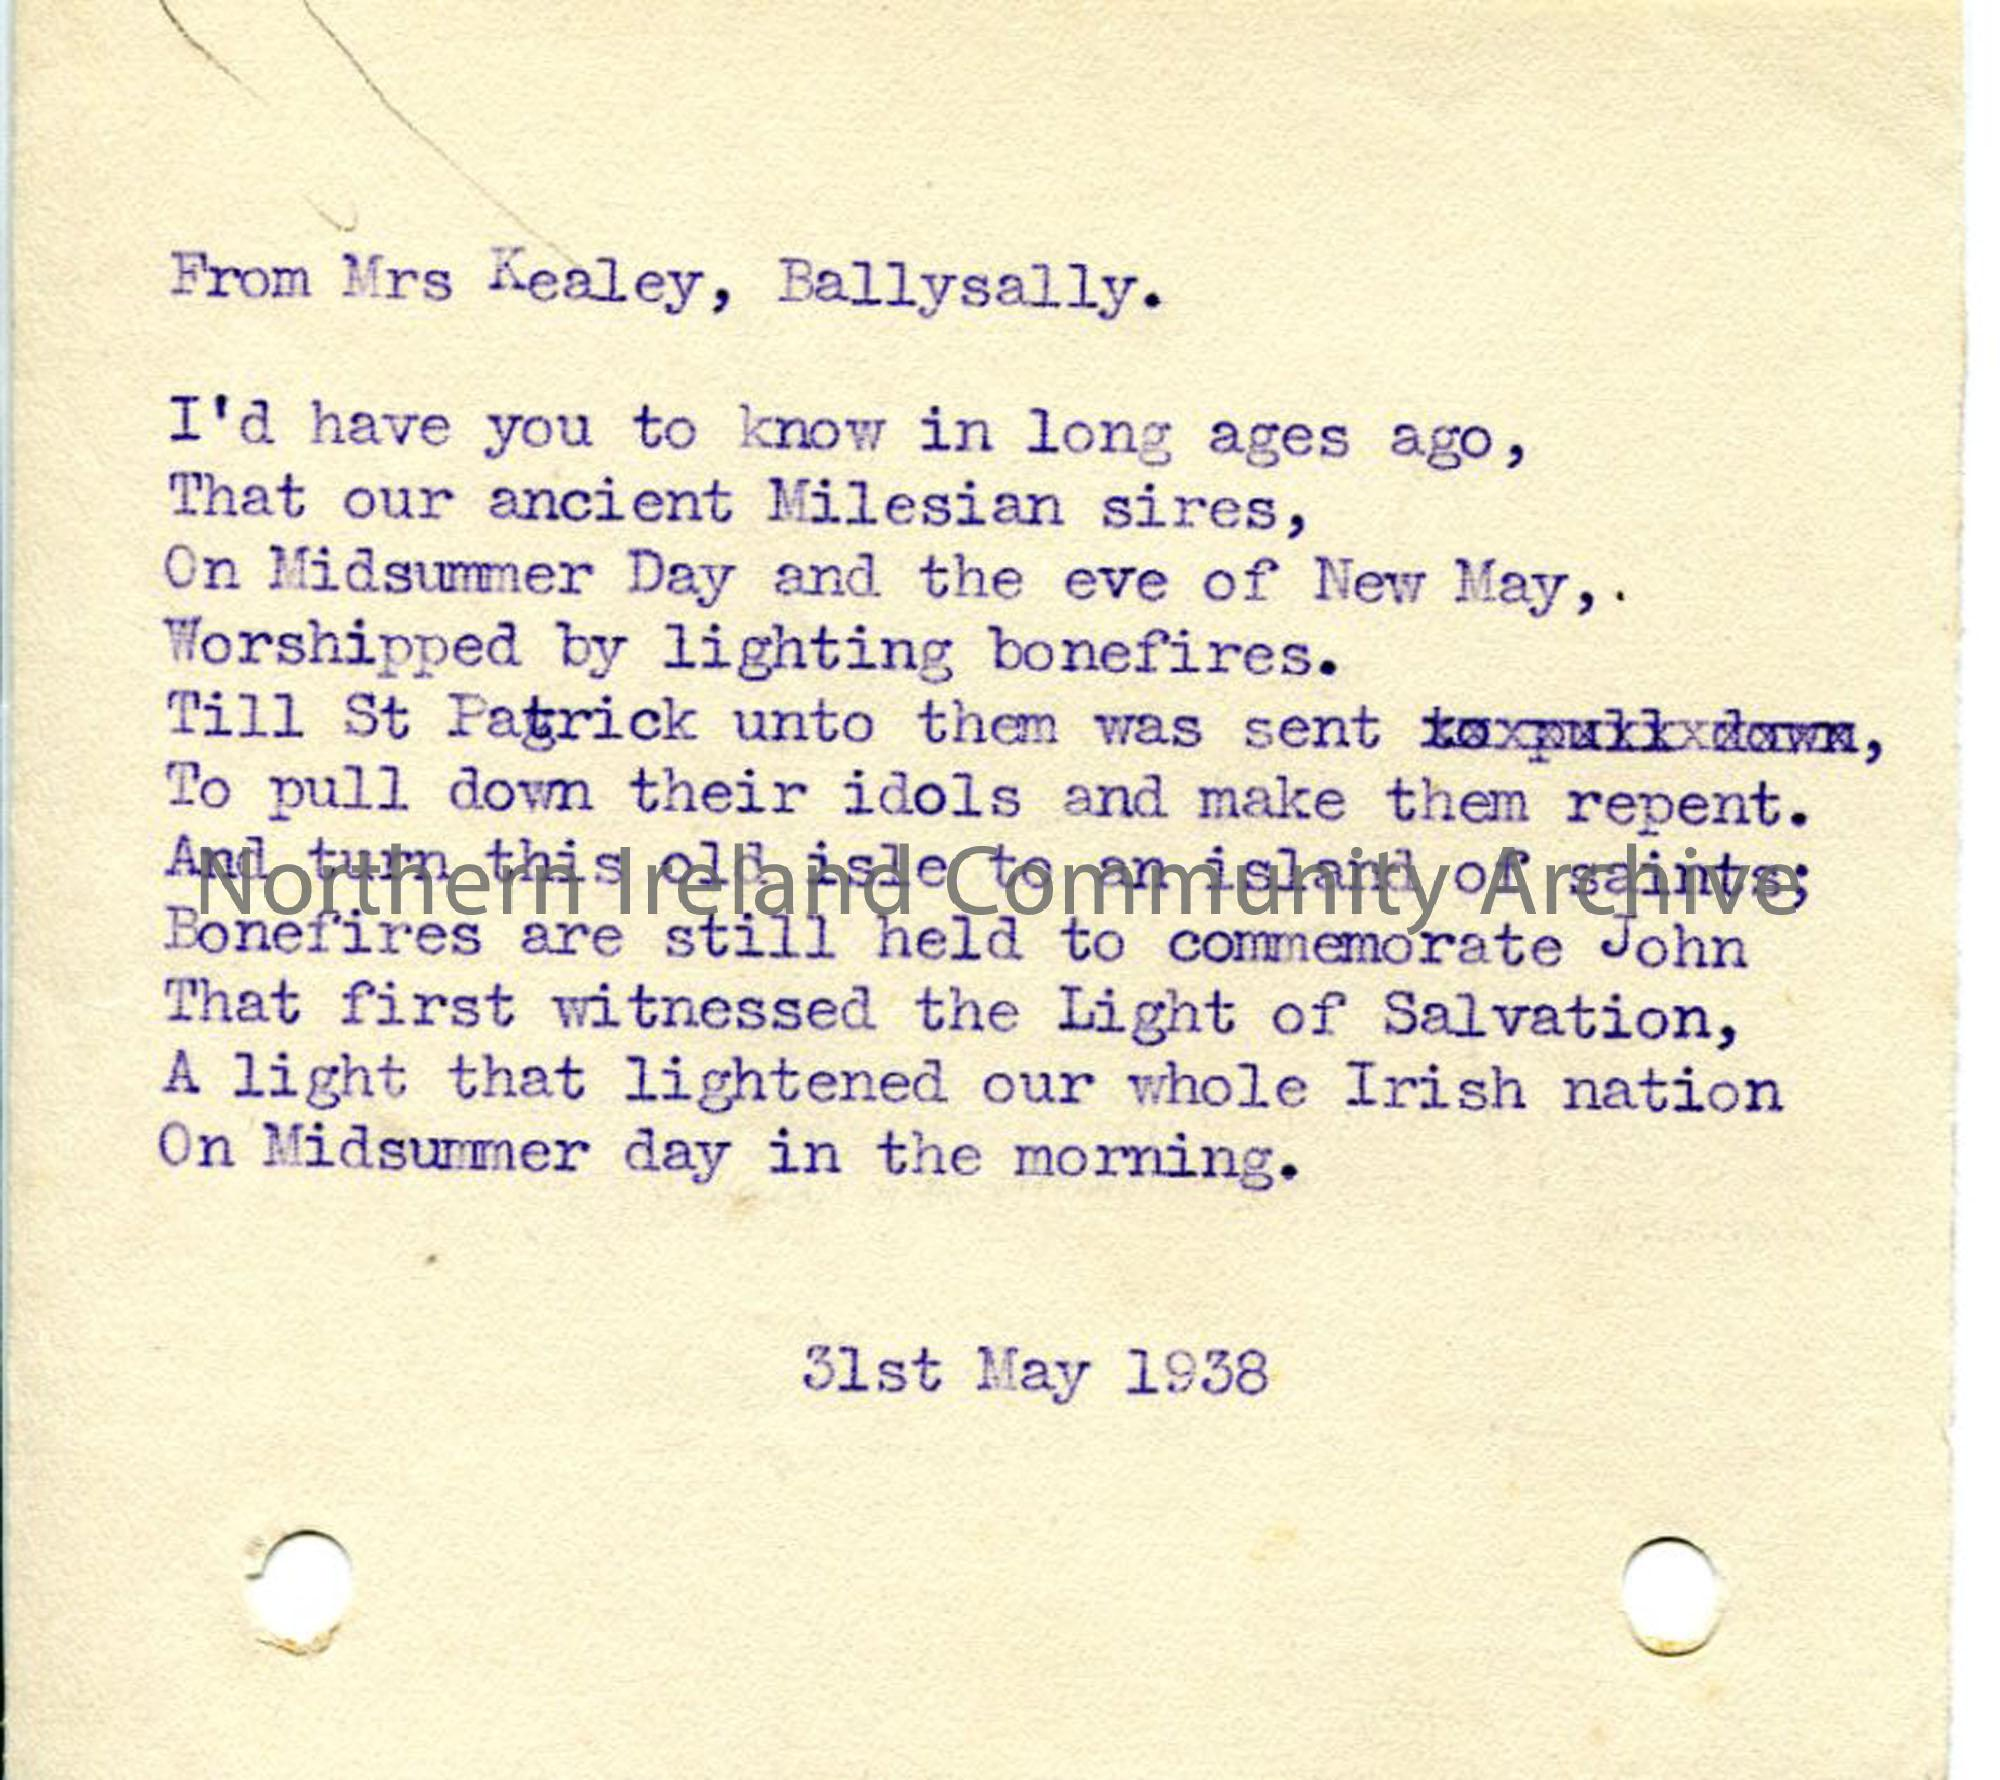 Untitled song from Mrs Kealey, 31st May 1938